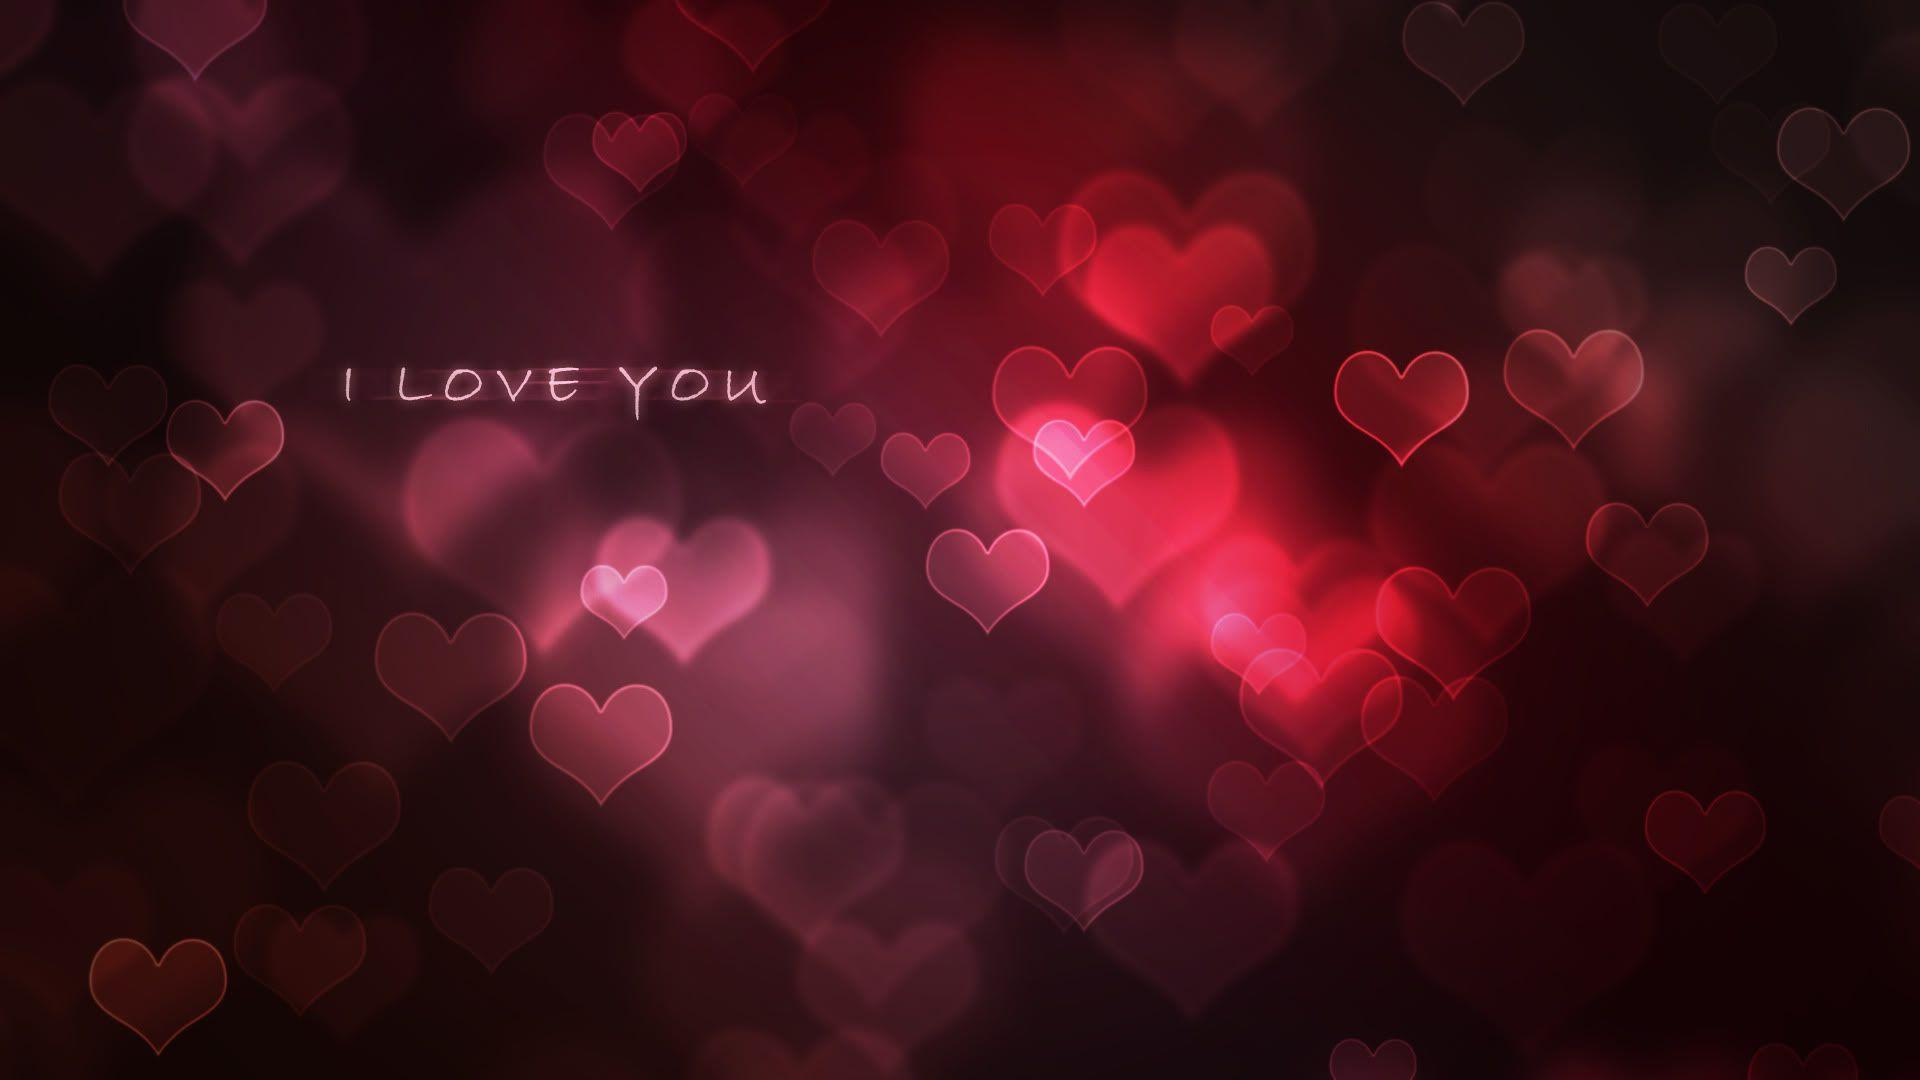 Love Wallpaper Wallpaper cave : Love Backgrounds Wallpapers - Wallpaper cave